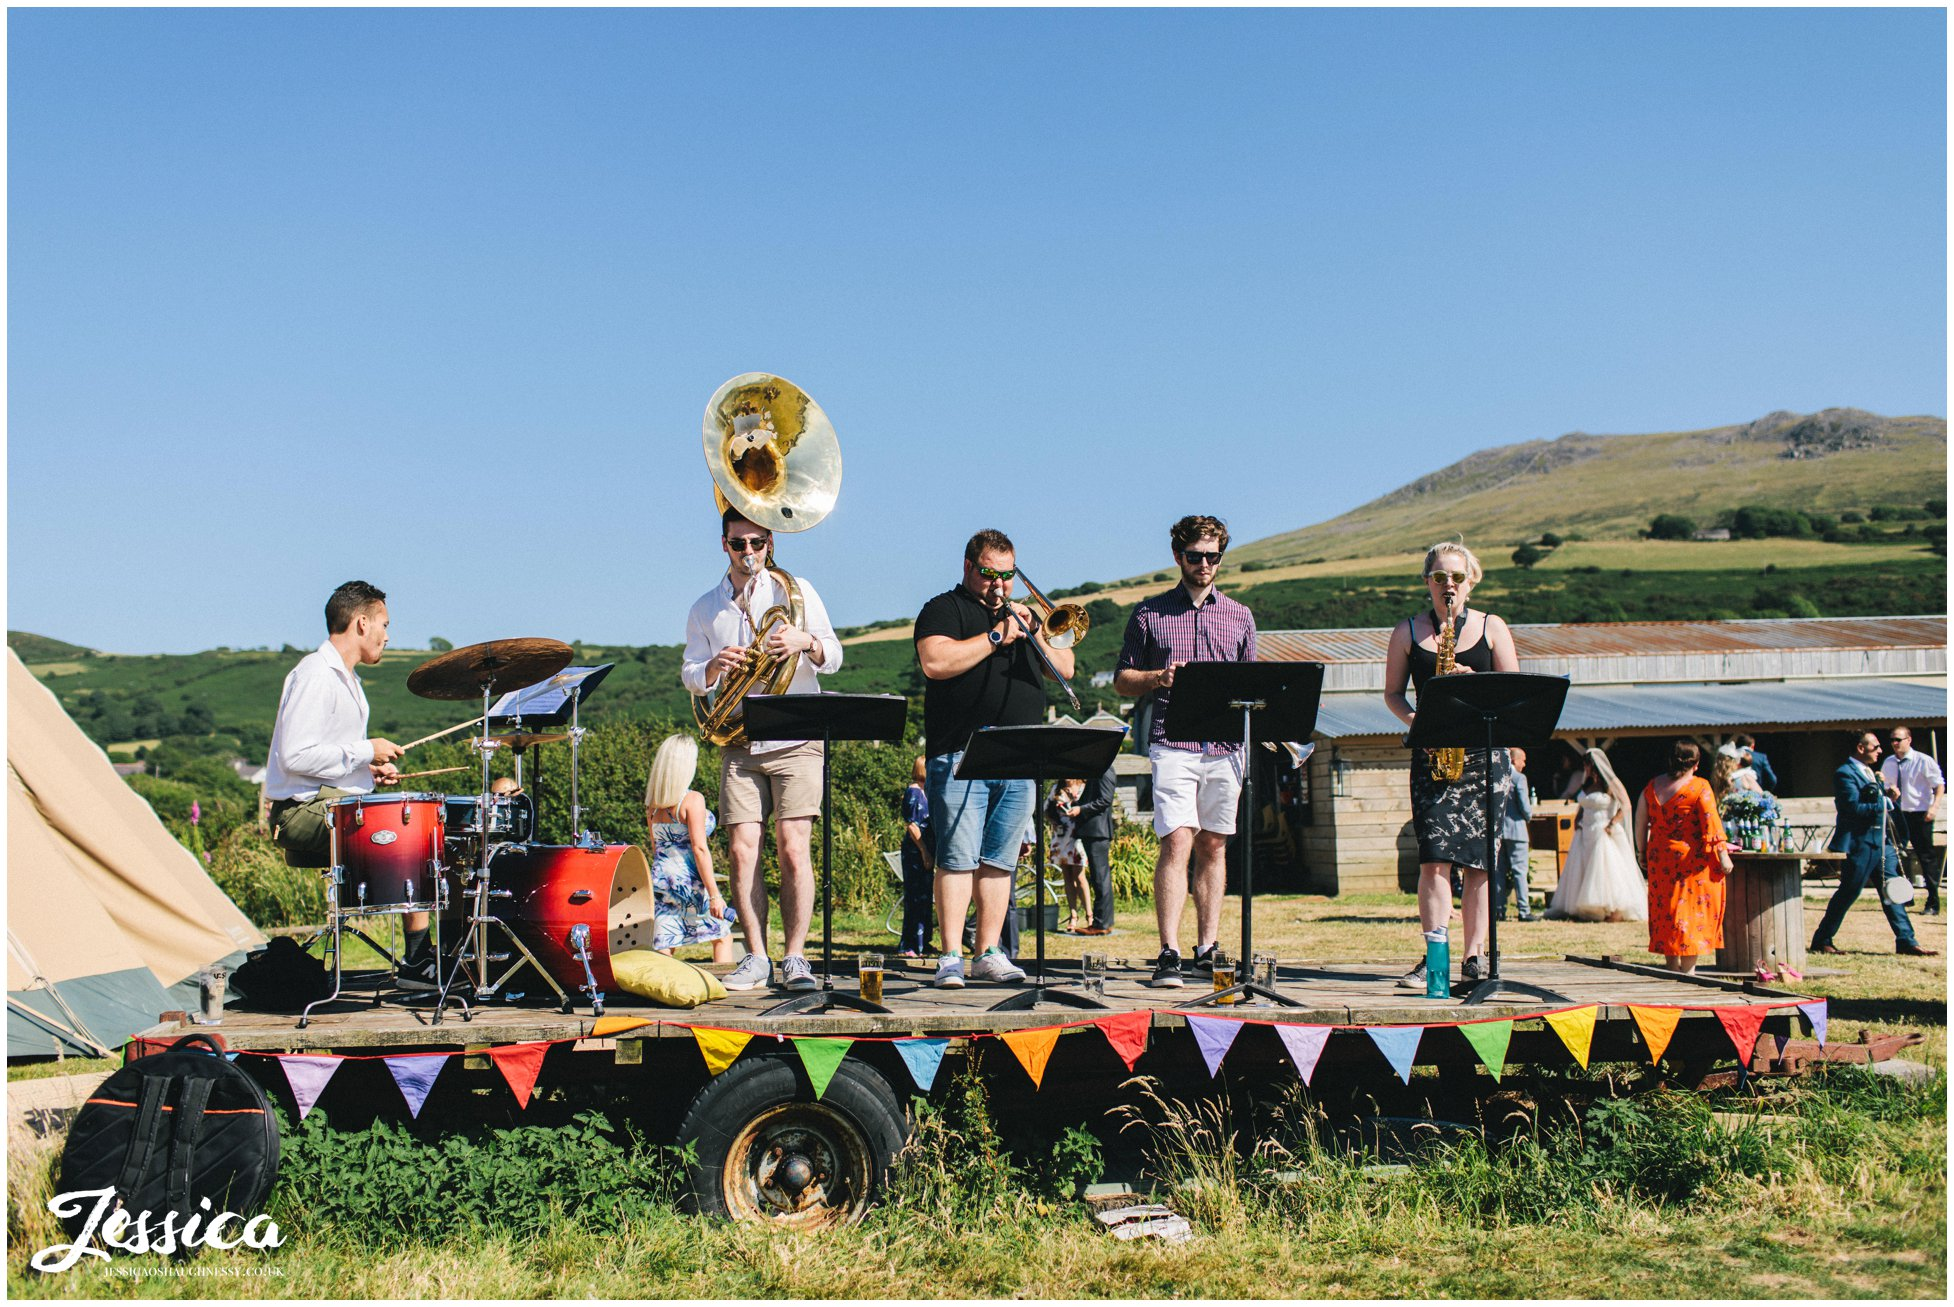 brass band play stood on tractor trailer in north wales